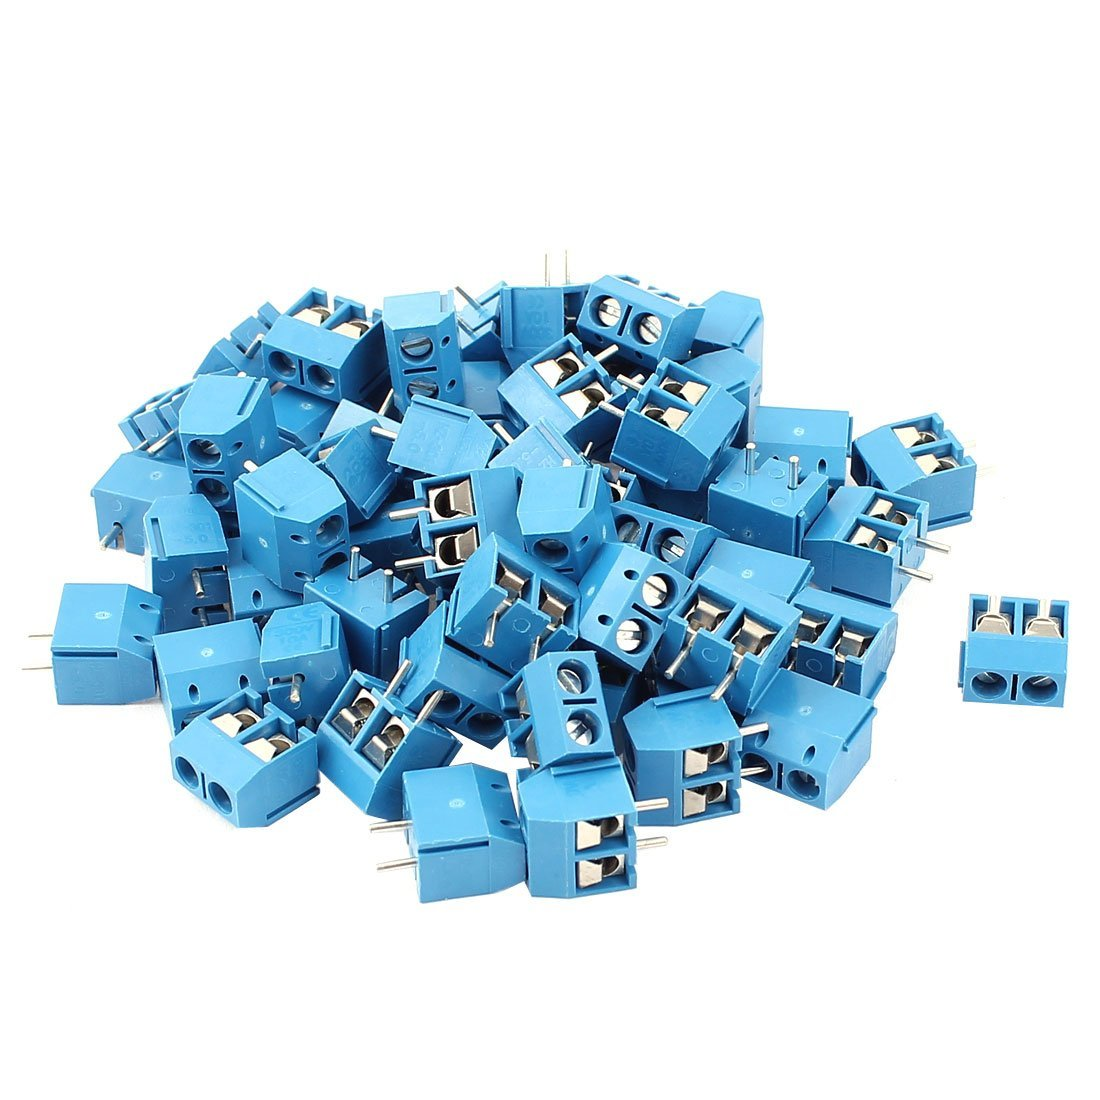 uxcell AC 300V 10A PCB Terminal Block Connector 5.0mm Pitch 60Pcs Blue